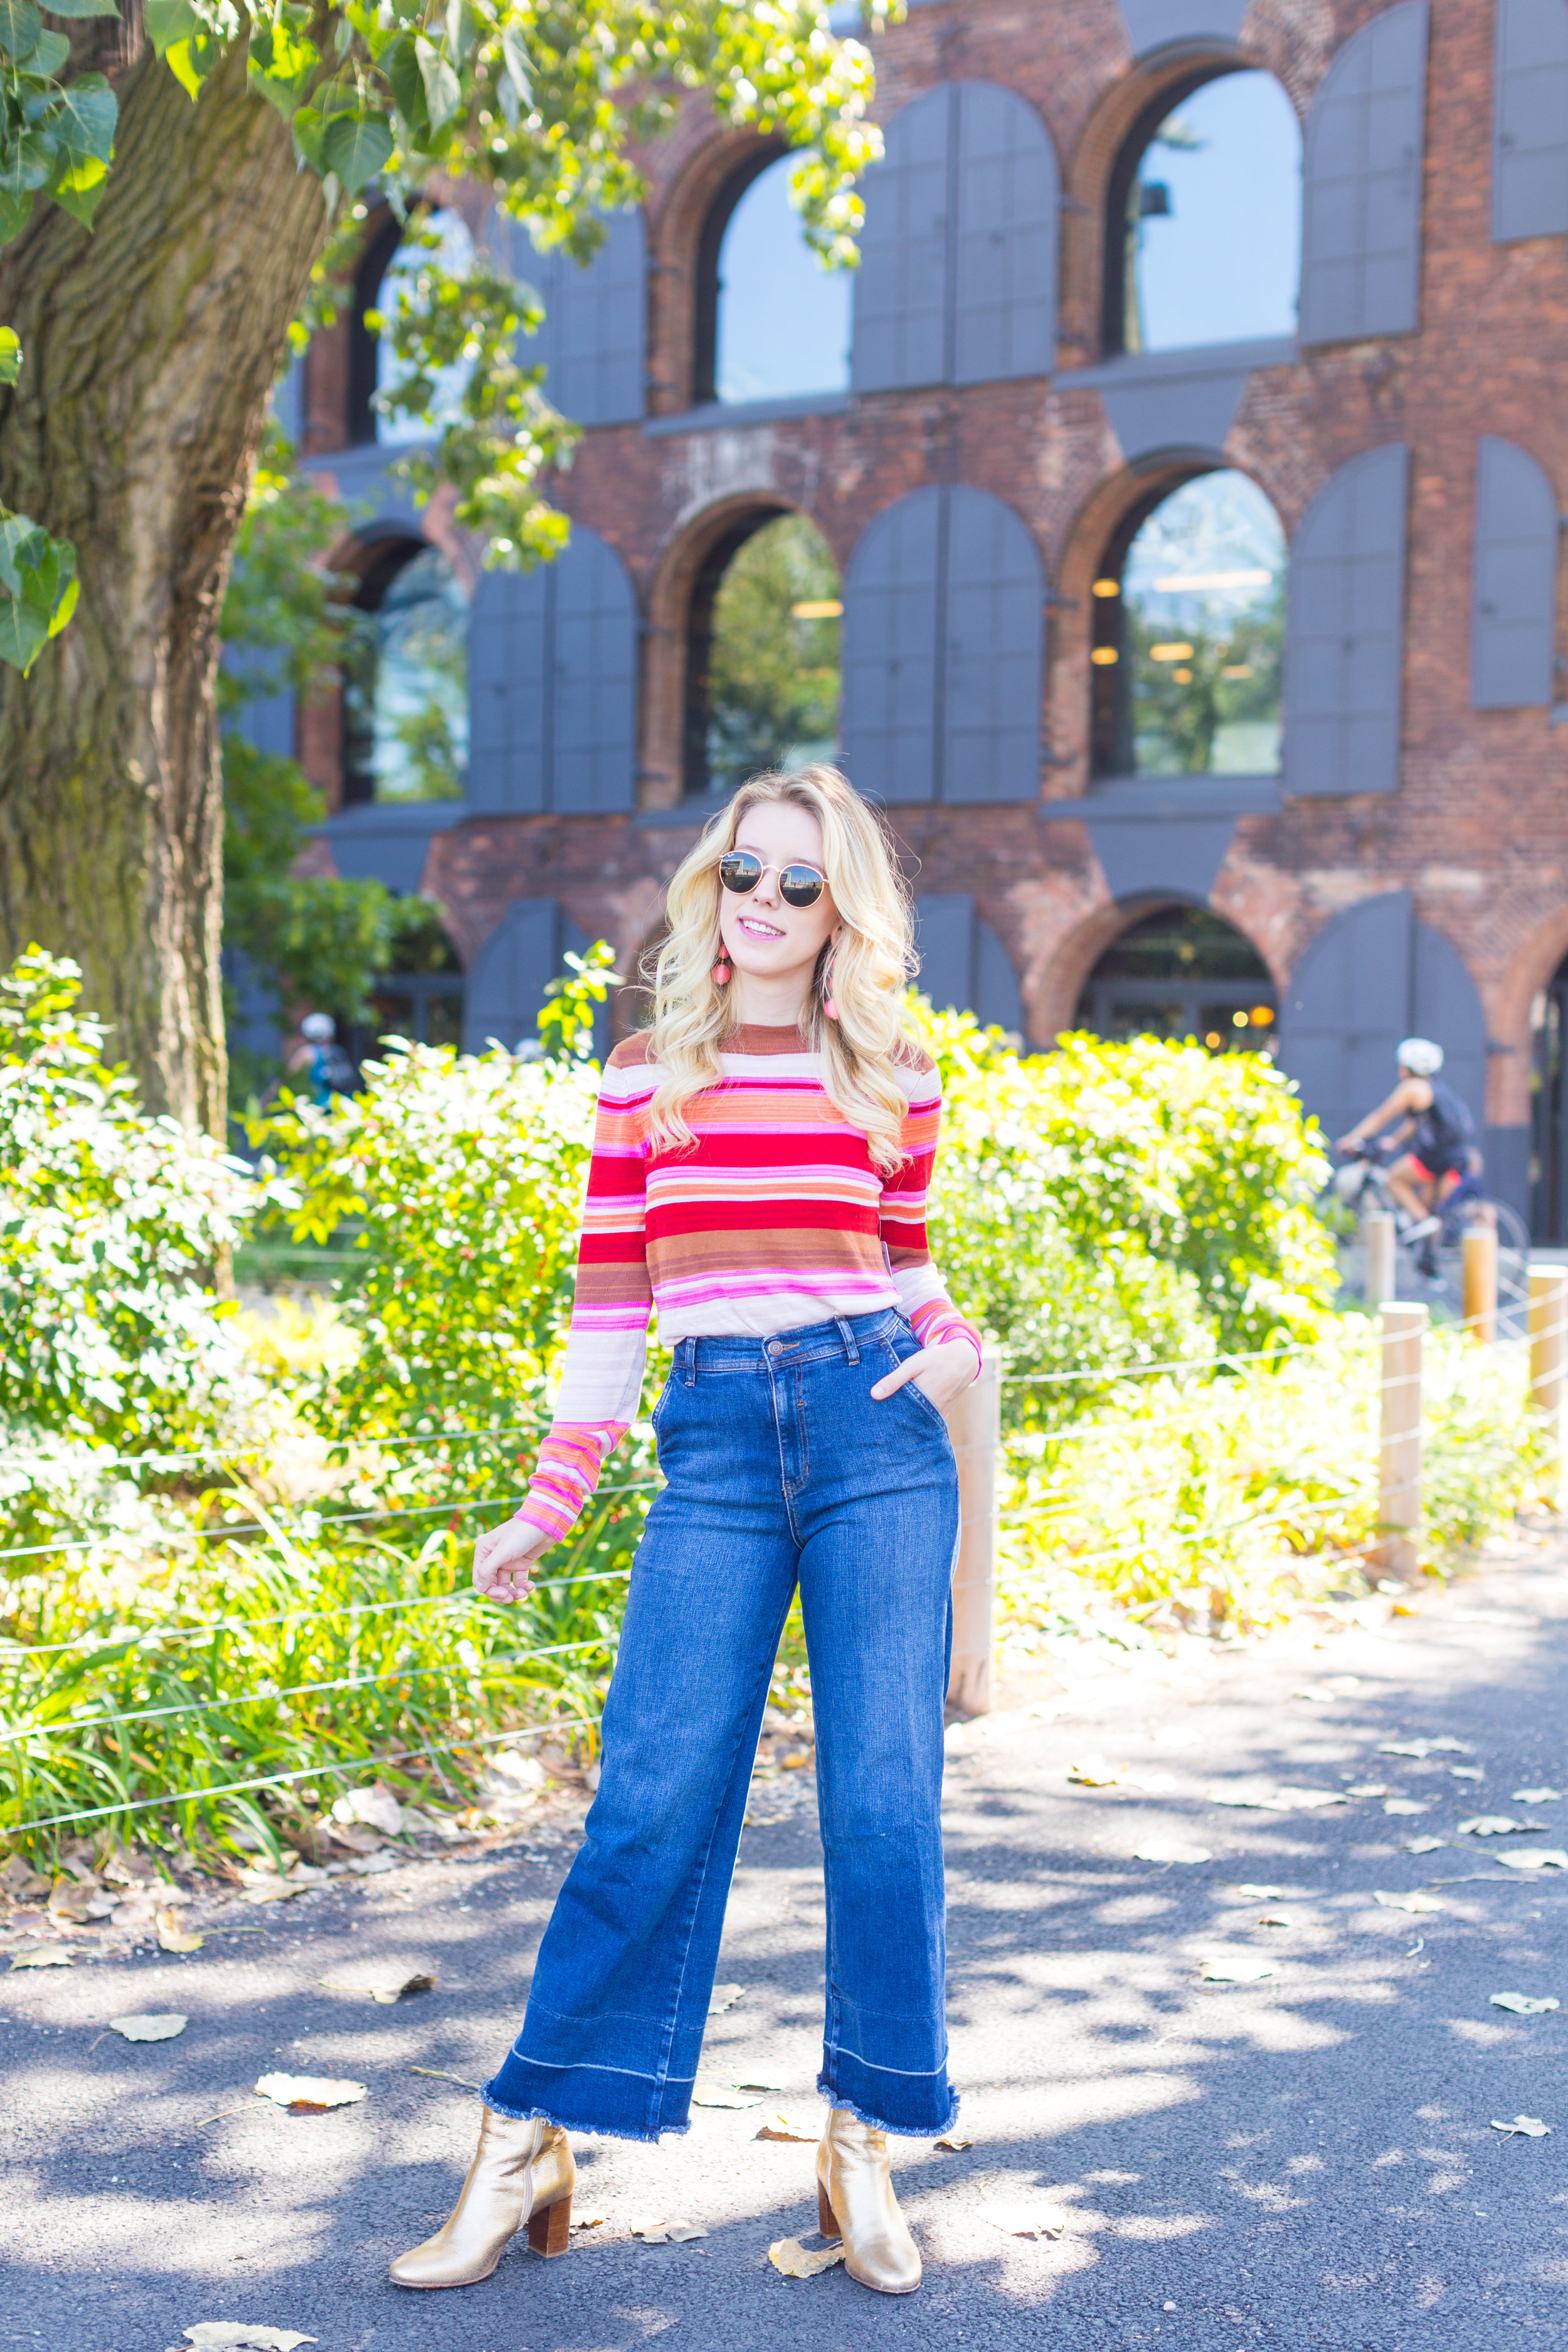 Fall Fashion Retro Striped Sweater and Wide Leg Jeans-2.jpg